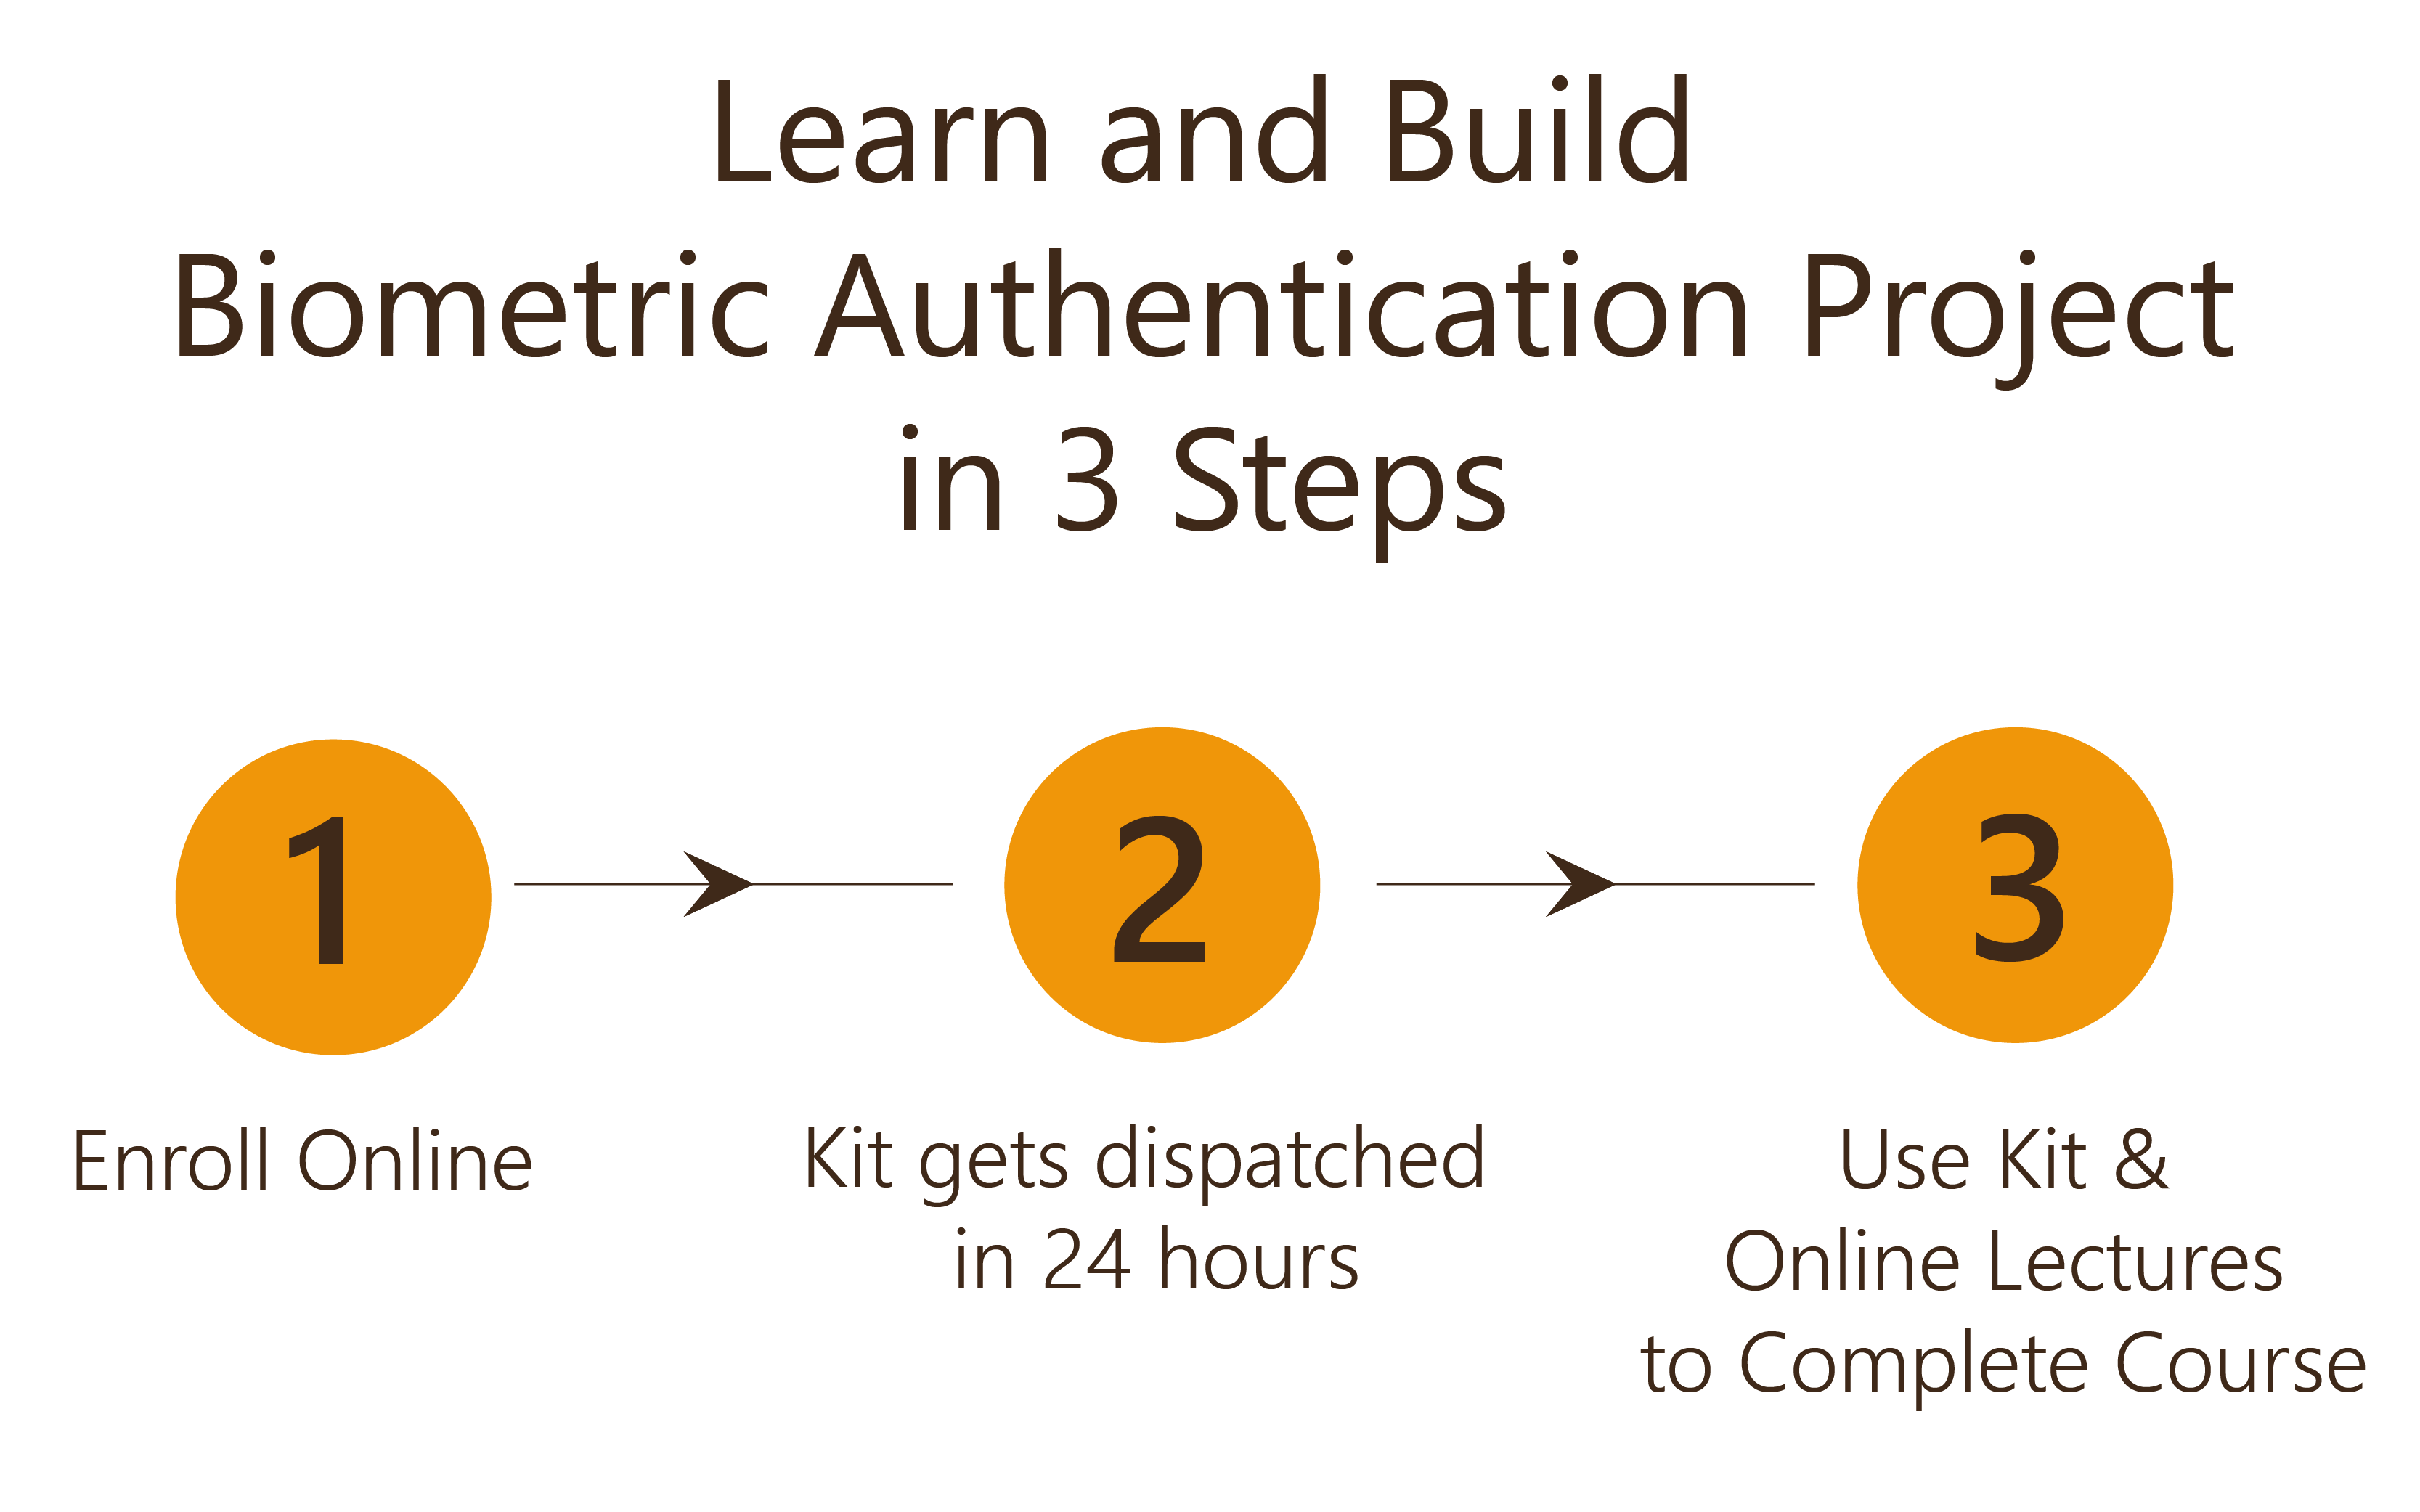 Learn and Build Biometric Authentication Project in 3 Steps